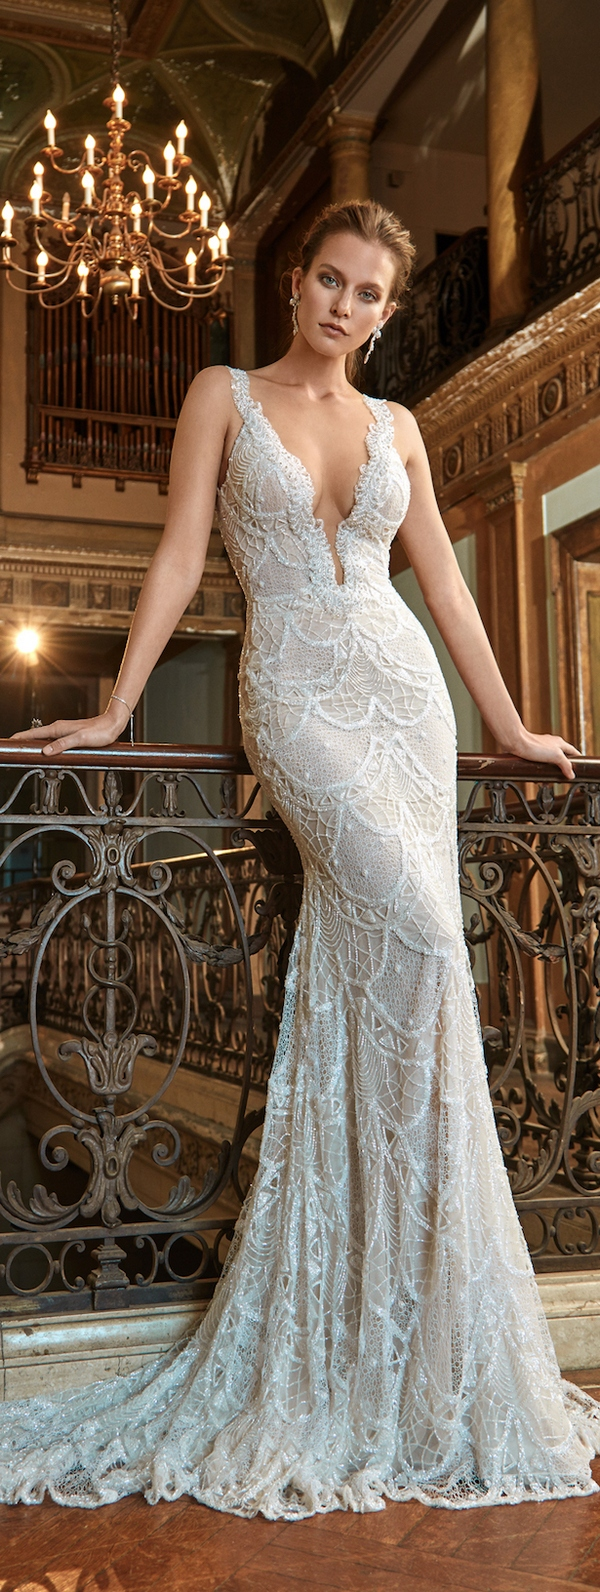 Textural Strap Fitting Wedding Dress With A Plunging Neckline And Appliques